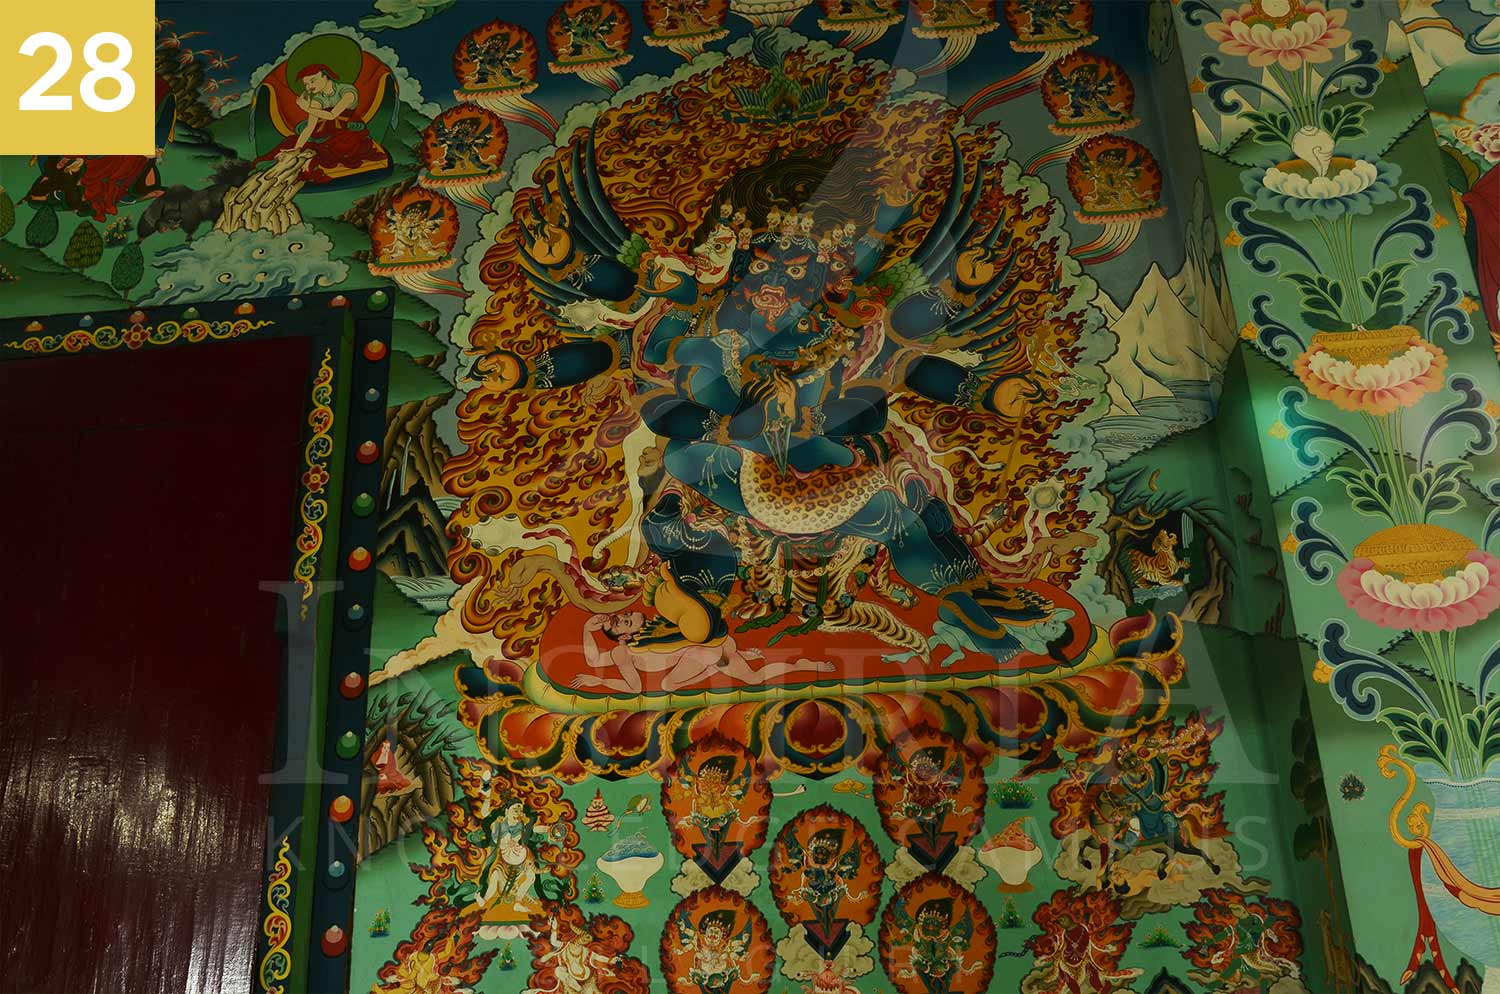 nice work on the wall of rangapani monastery, darjeeling district, west bengal